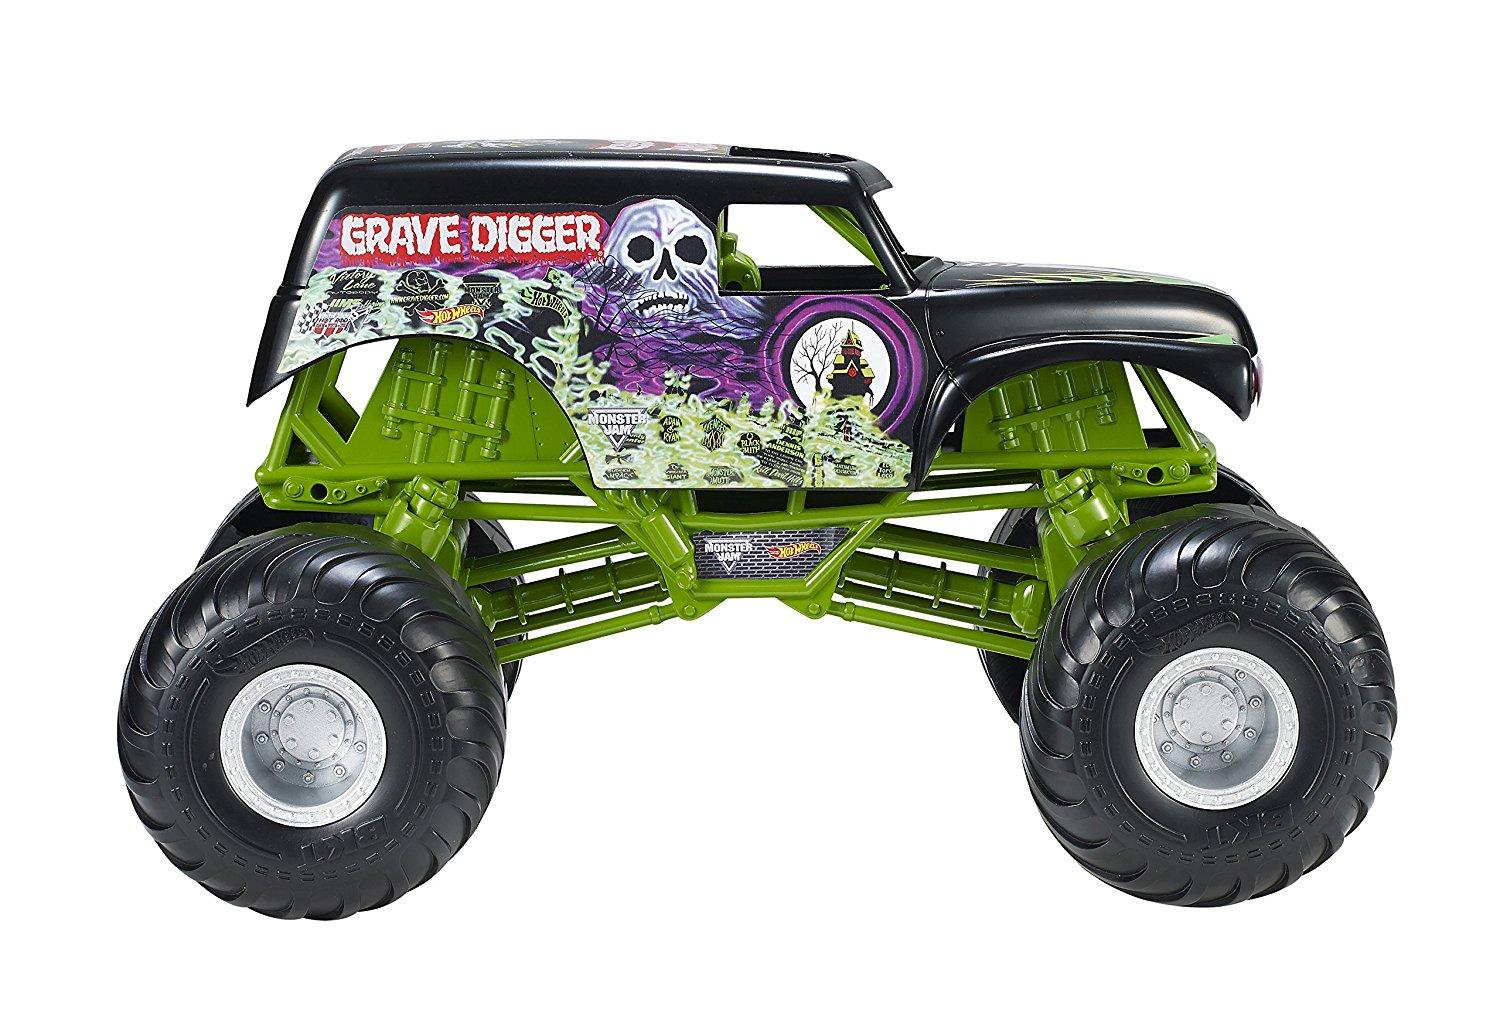 Shop for monster jam toys online at Target. Free shipping & returns and save 5% every day with your Target REDcard.